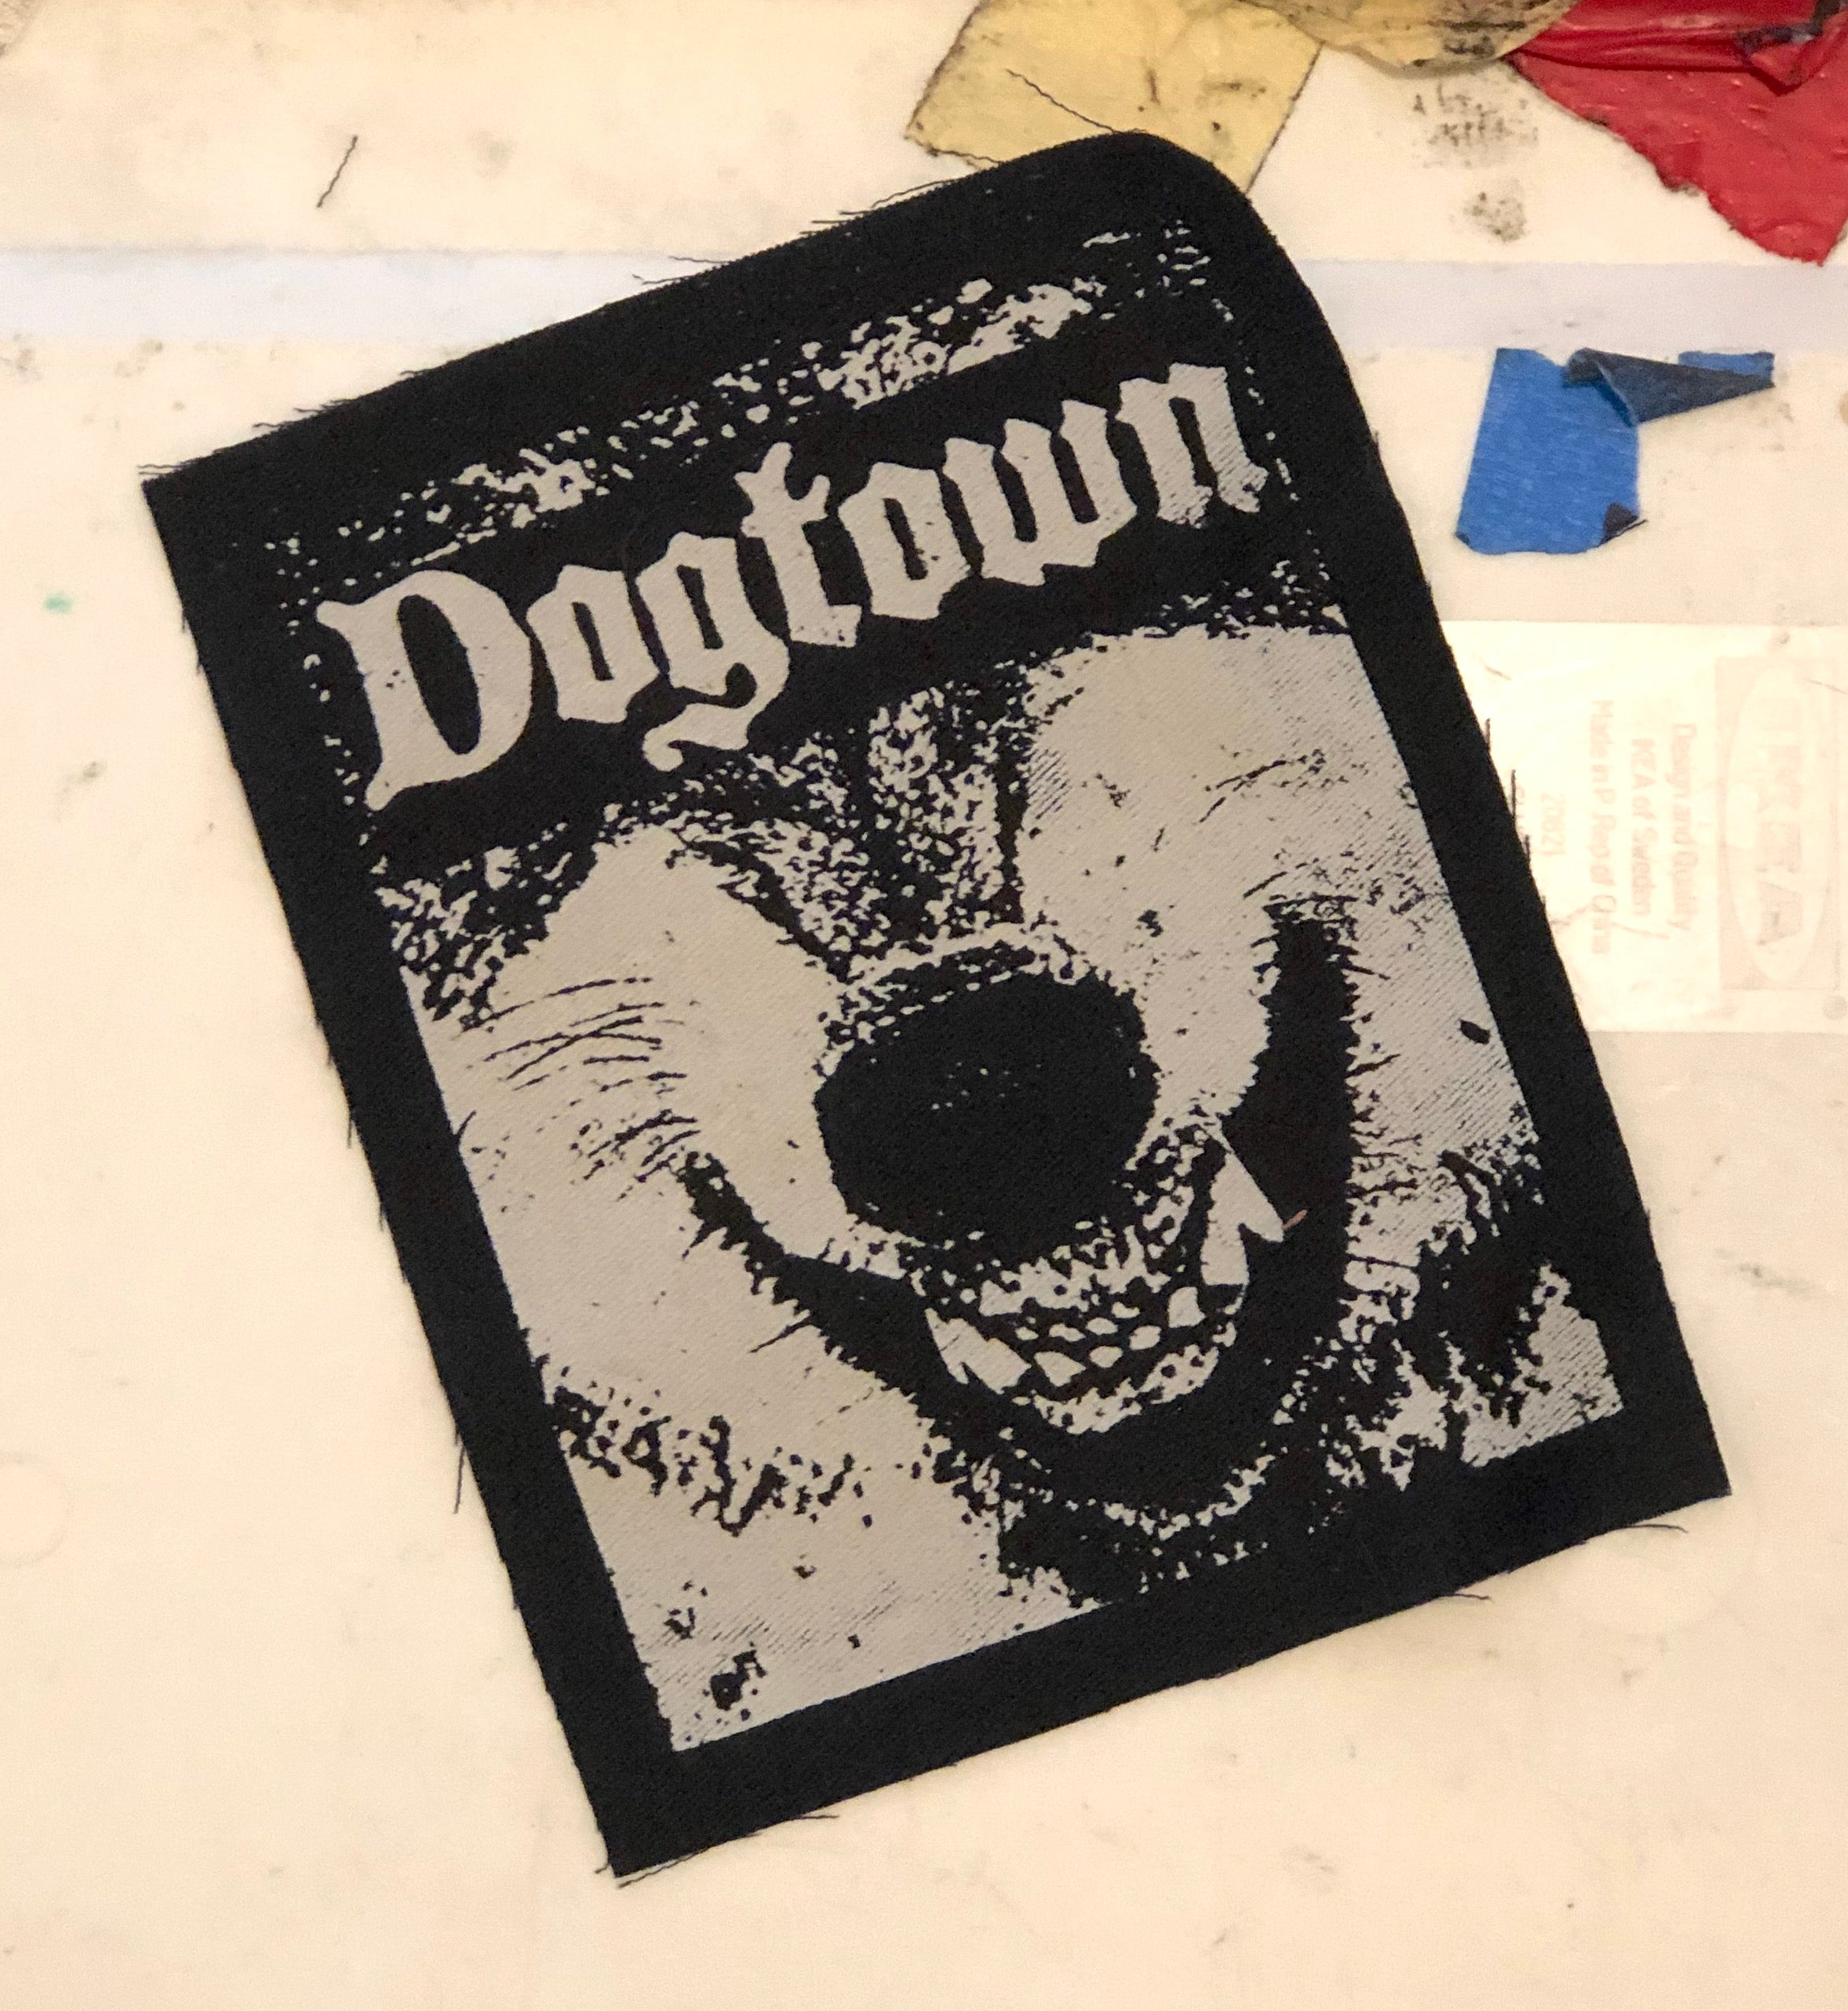 Dogtown Snout Patch